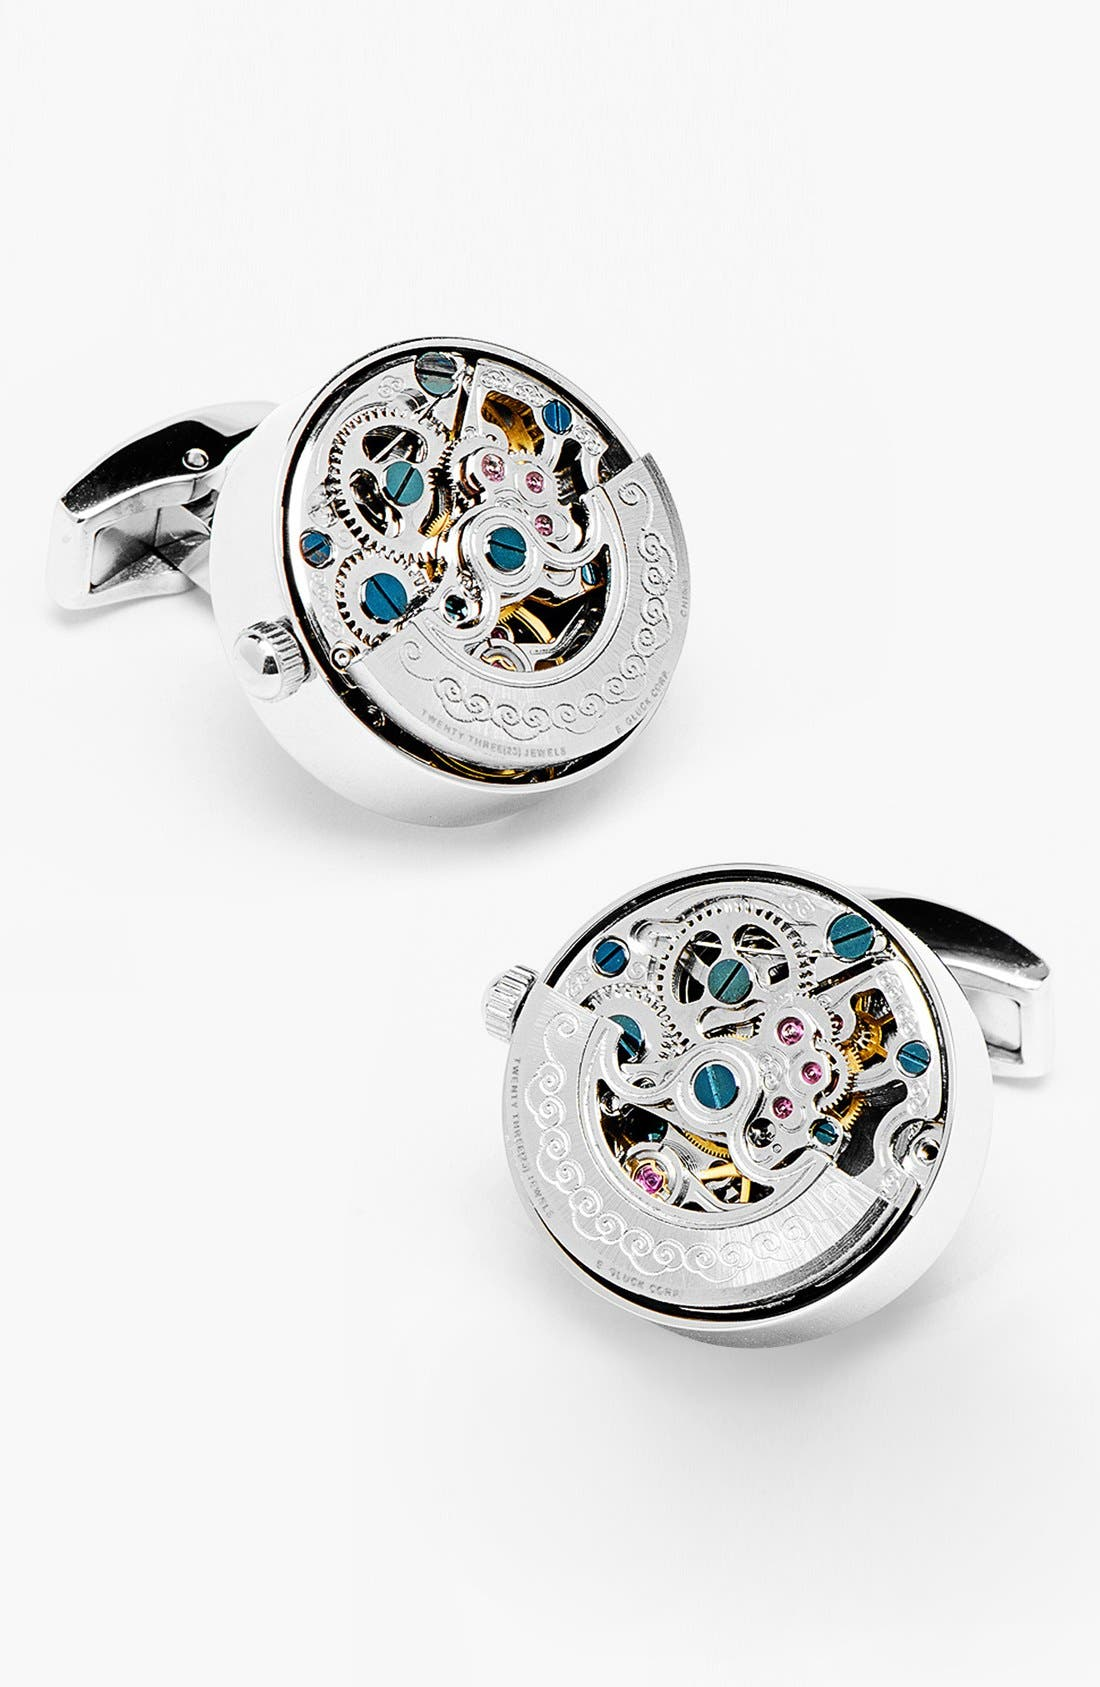 'Kinetic Watch' Cuff Links,                             Main thumbnail 1, color,                             040